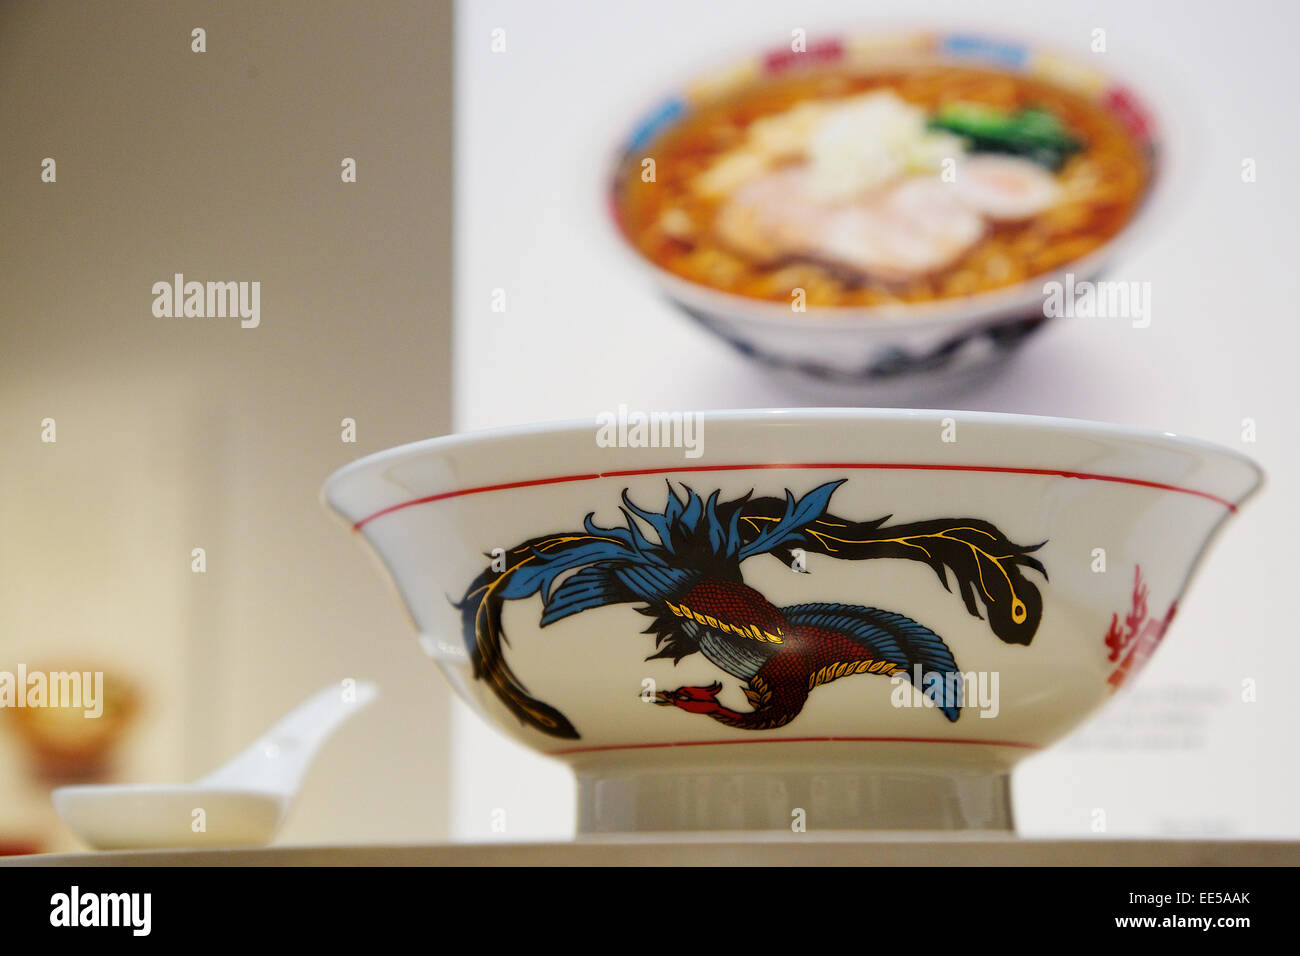 January 14, 2015, Tokyo, Japan : A noodle bowl design on display at 'Mino Ramen Bowl Exhibition' in Tokyo, - Stock Image